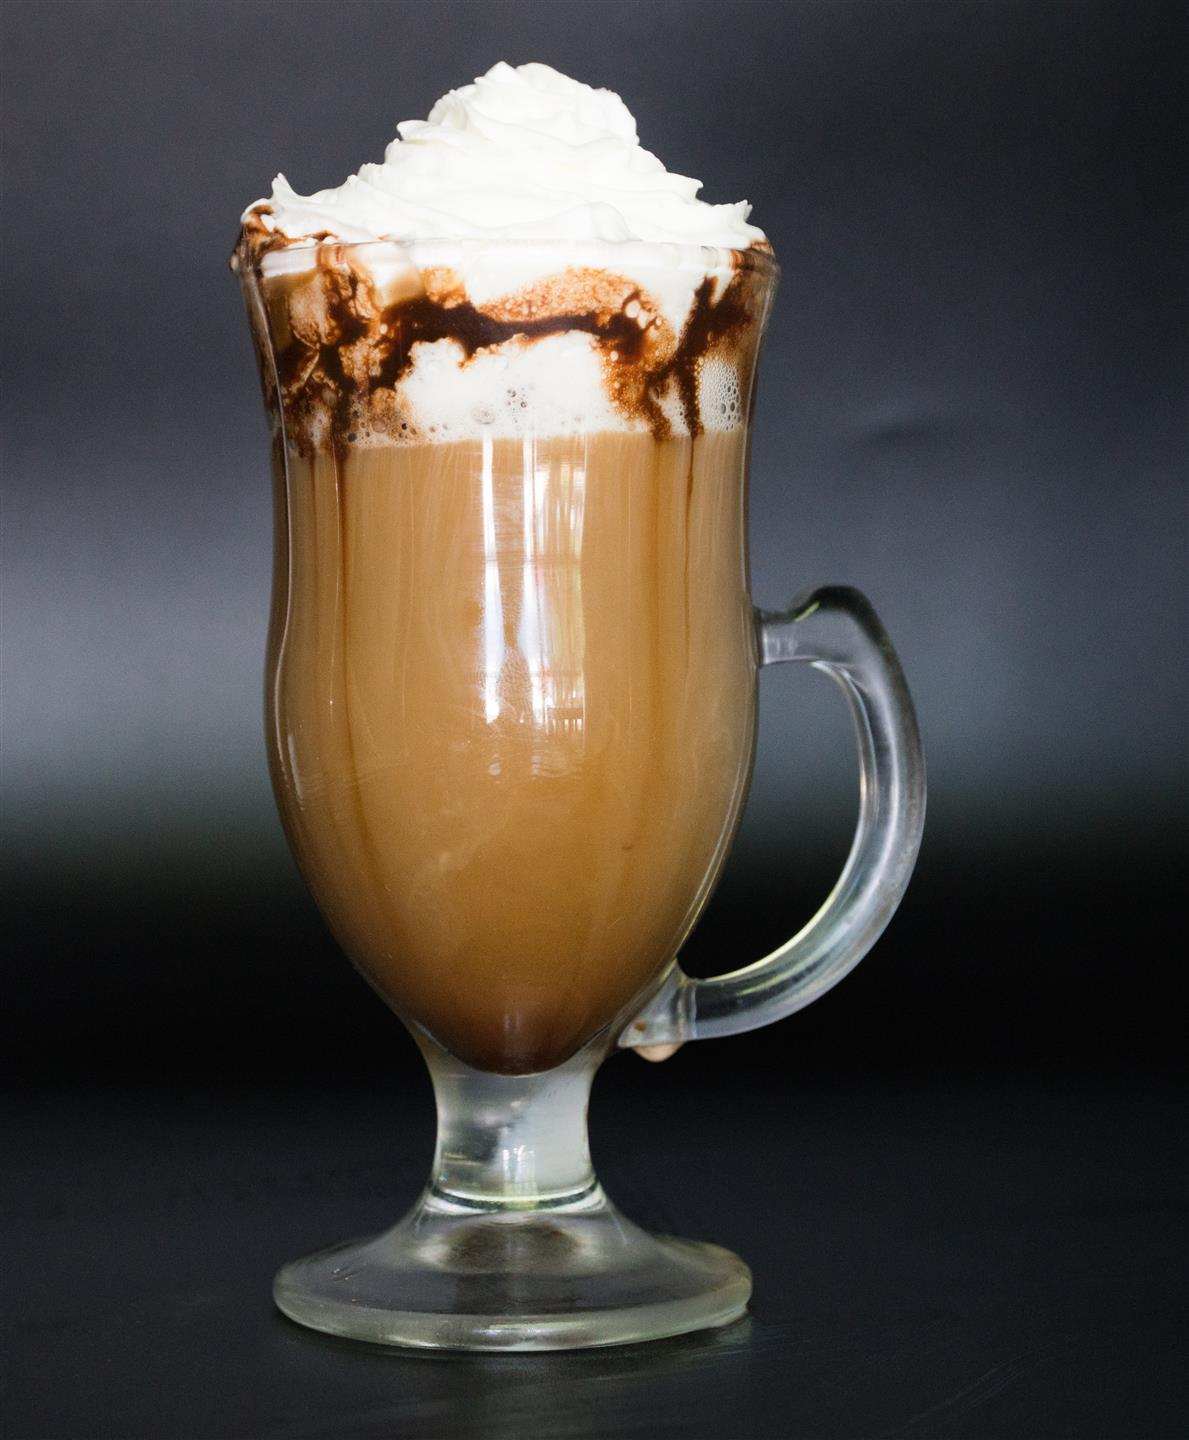 a cappucino in a glass mug with whipped cream